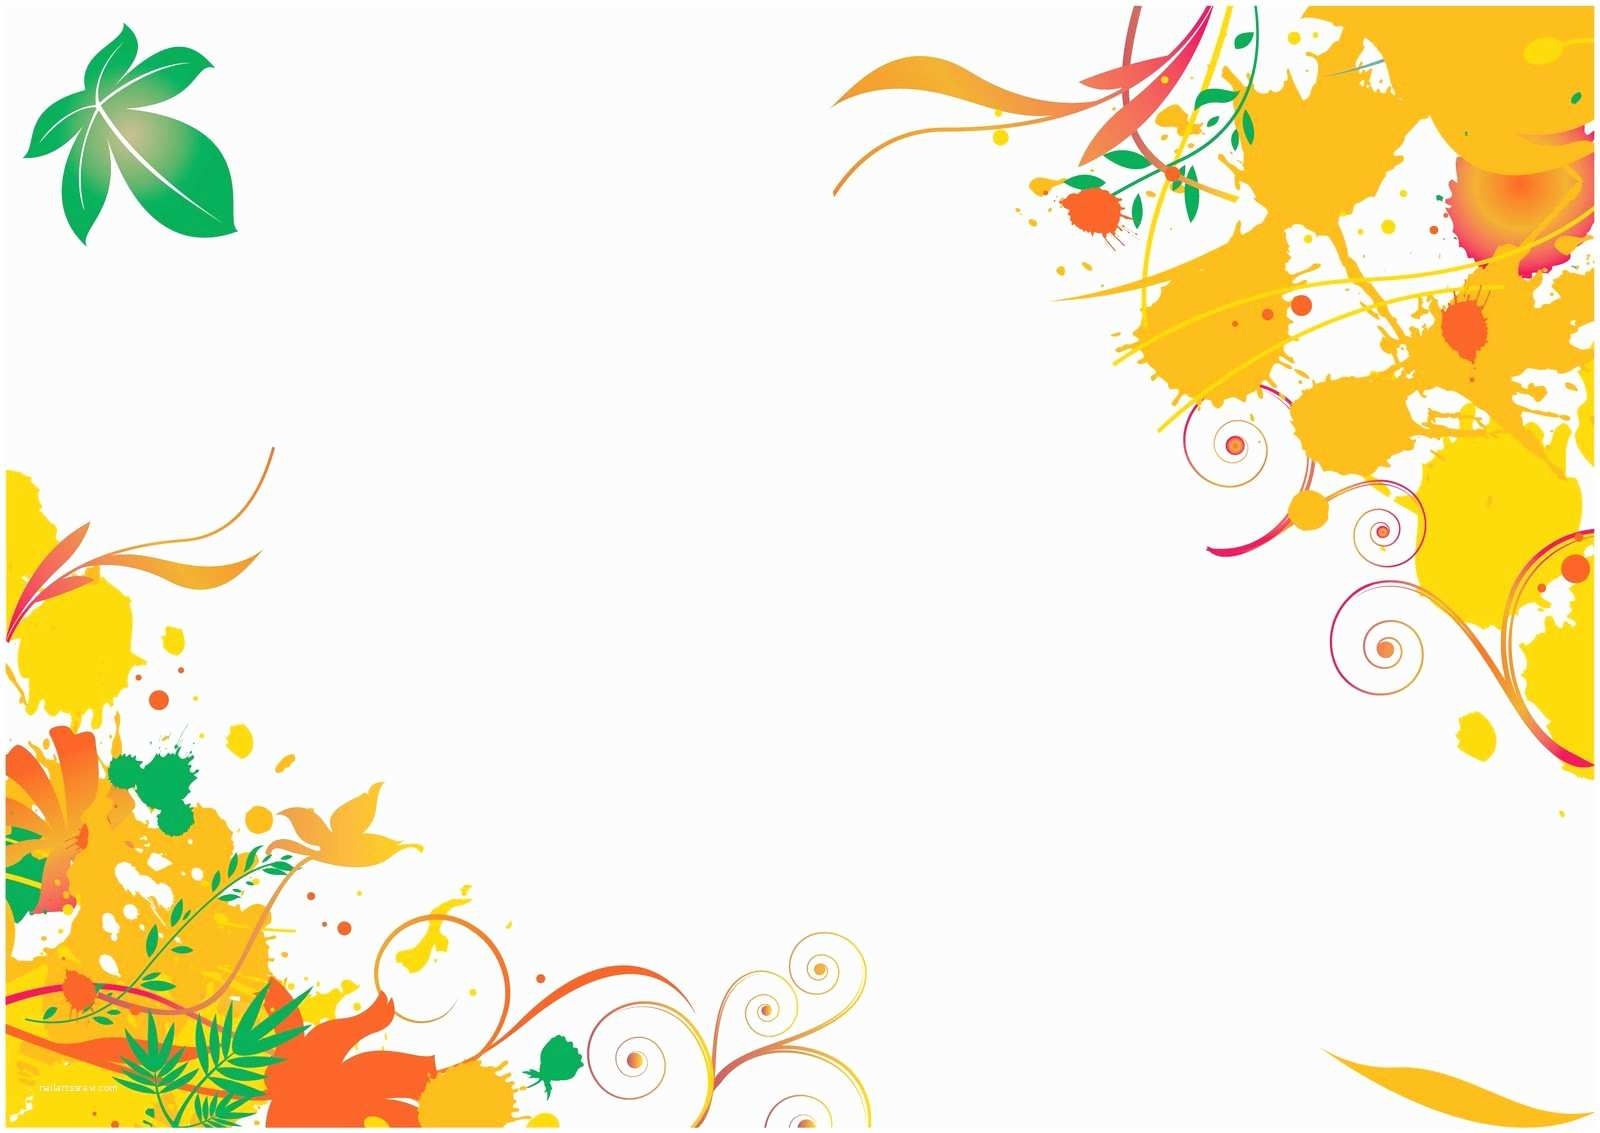 Background Designs for Wedding Invitations Free Wedding Invitation Background Designs – Weneedfun